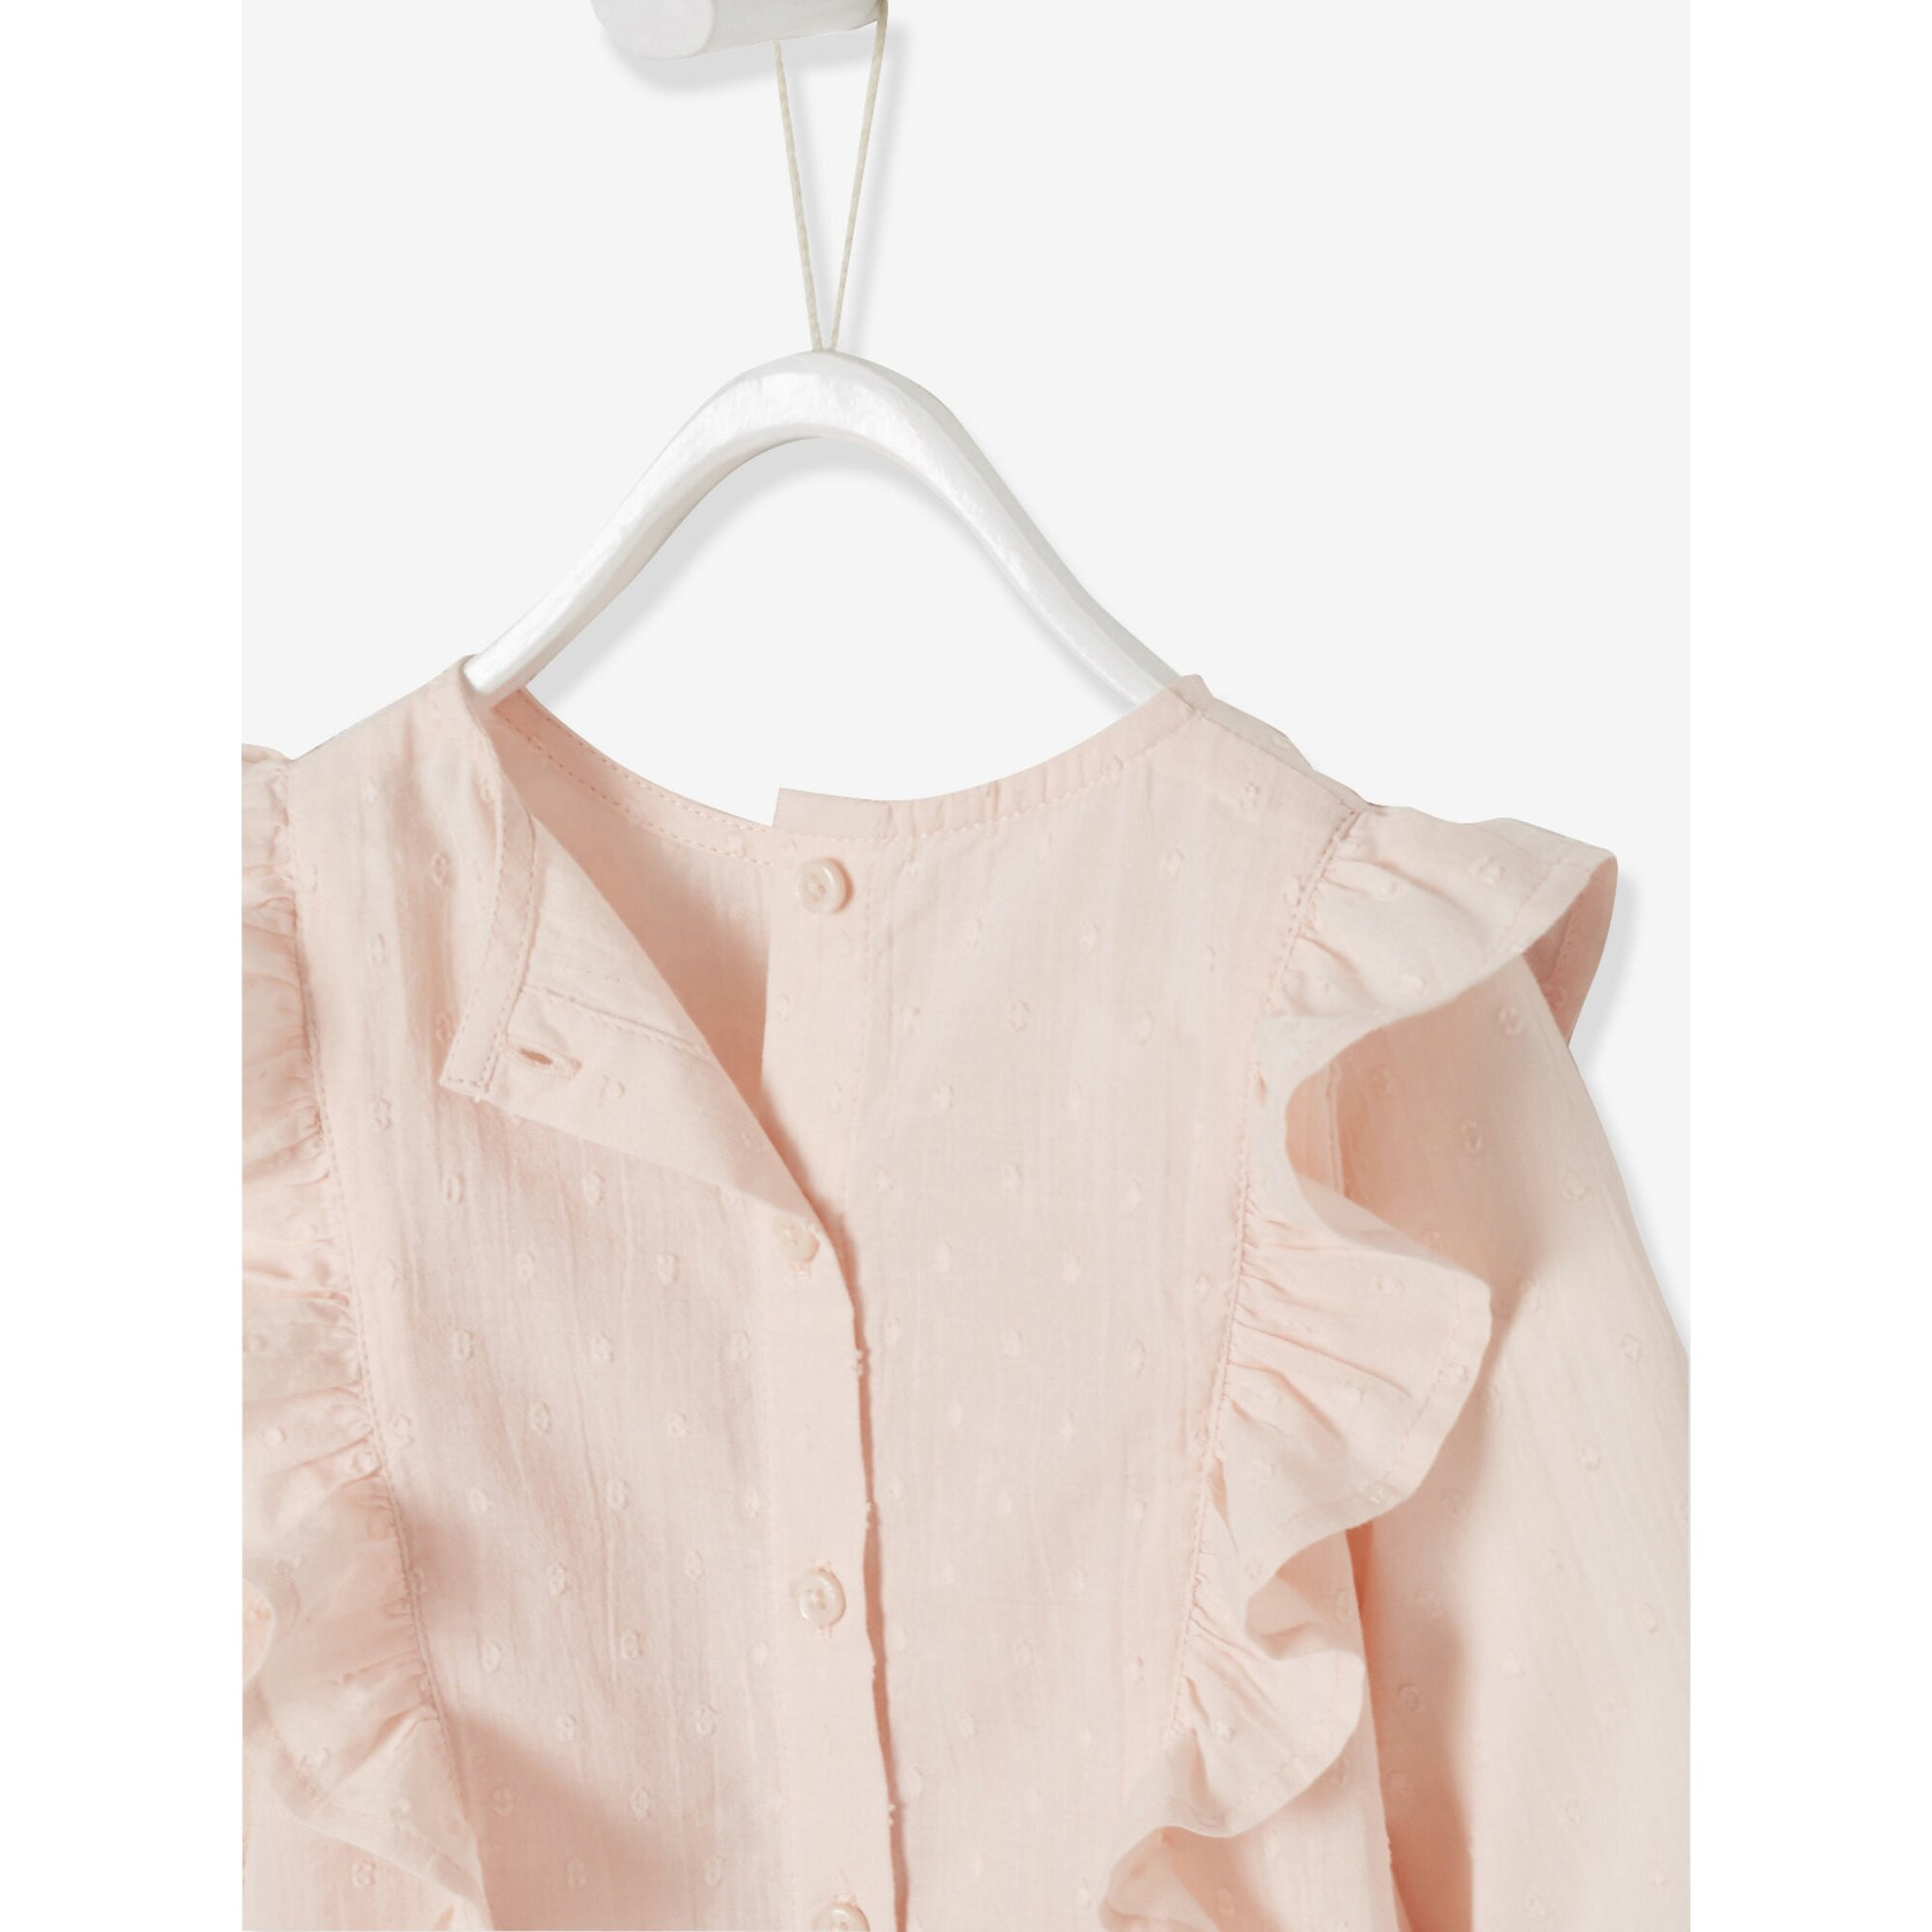 vertbaudet-baby-madchen-bluse-volants-plumetismuster